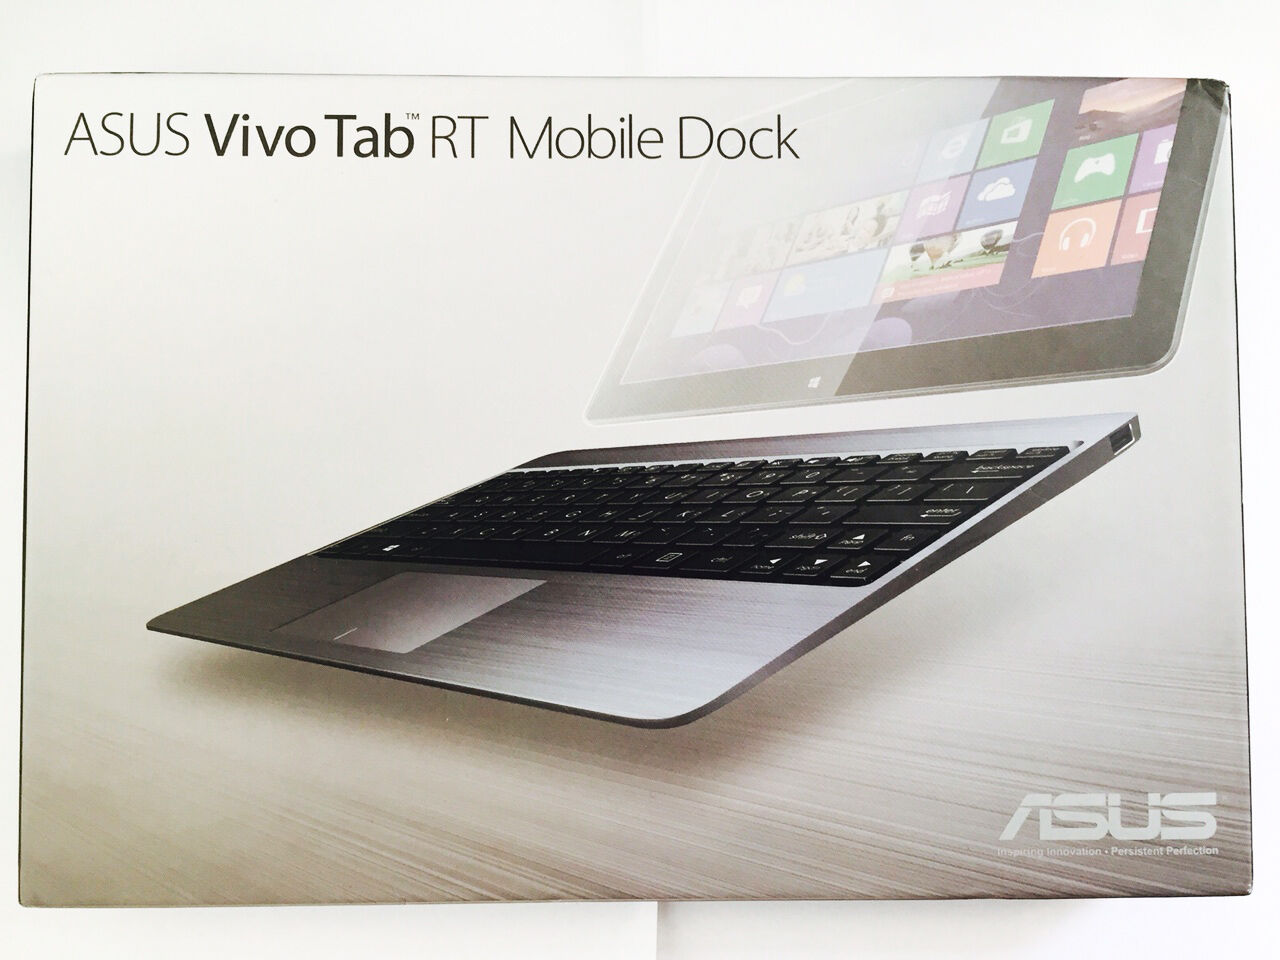 NEW-ASUS VivoTab RT Dock with Keyboard Touchpad Battery TF600T-DOCK-GR 28641